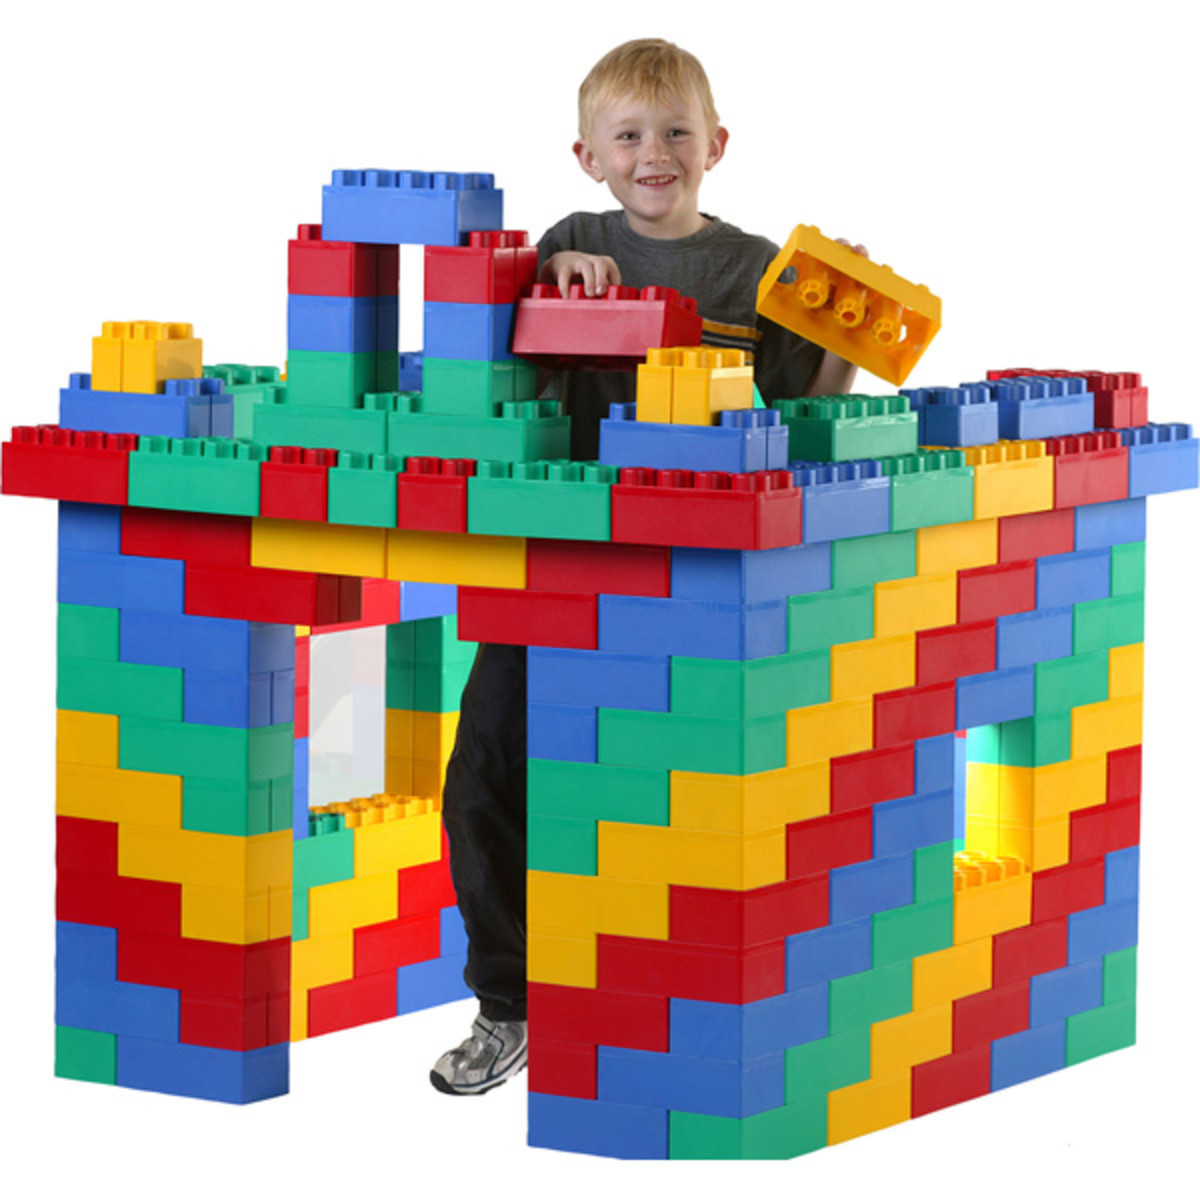 These Jumbo Blocks from Kids Adventure are fun for making forts, planes, or even building your own furniture set.